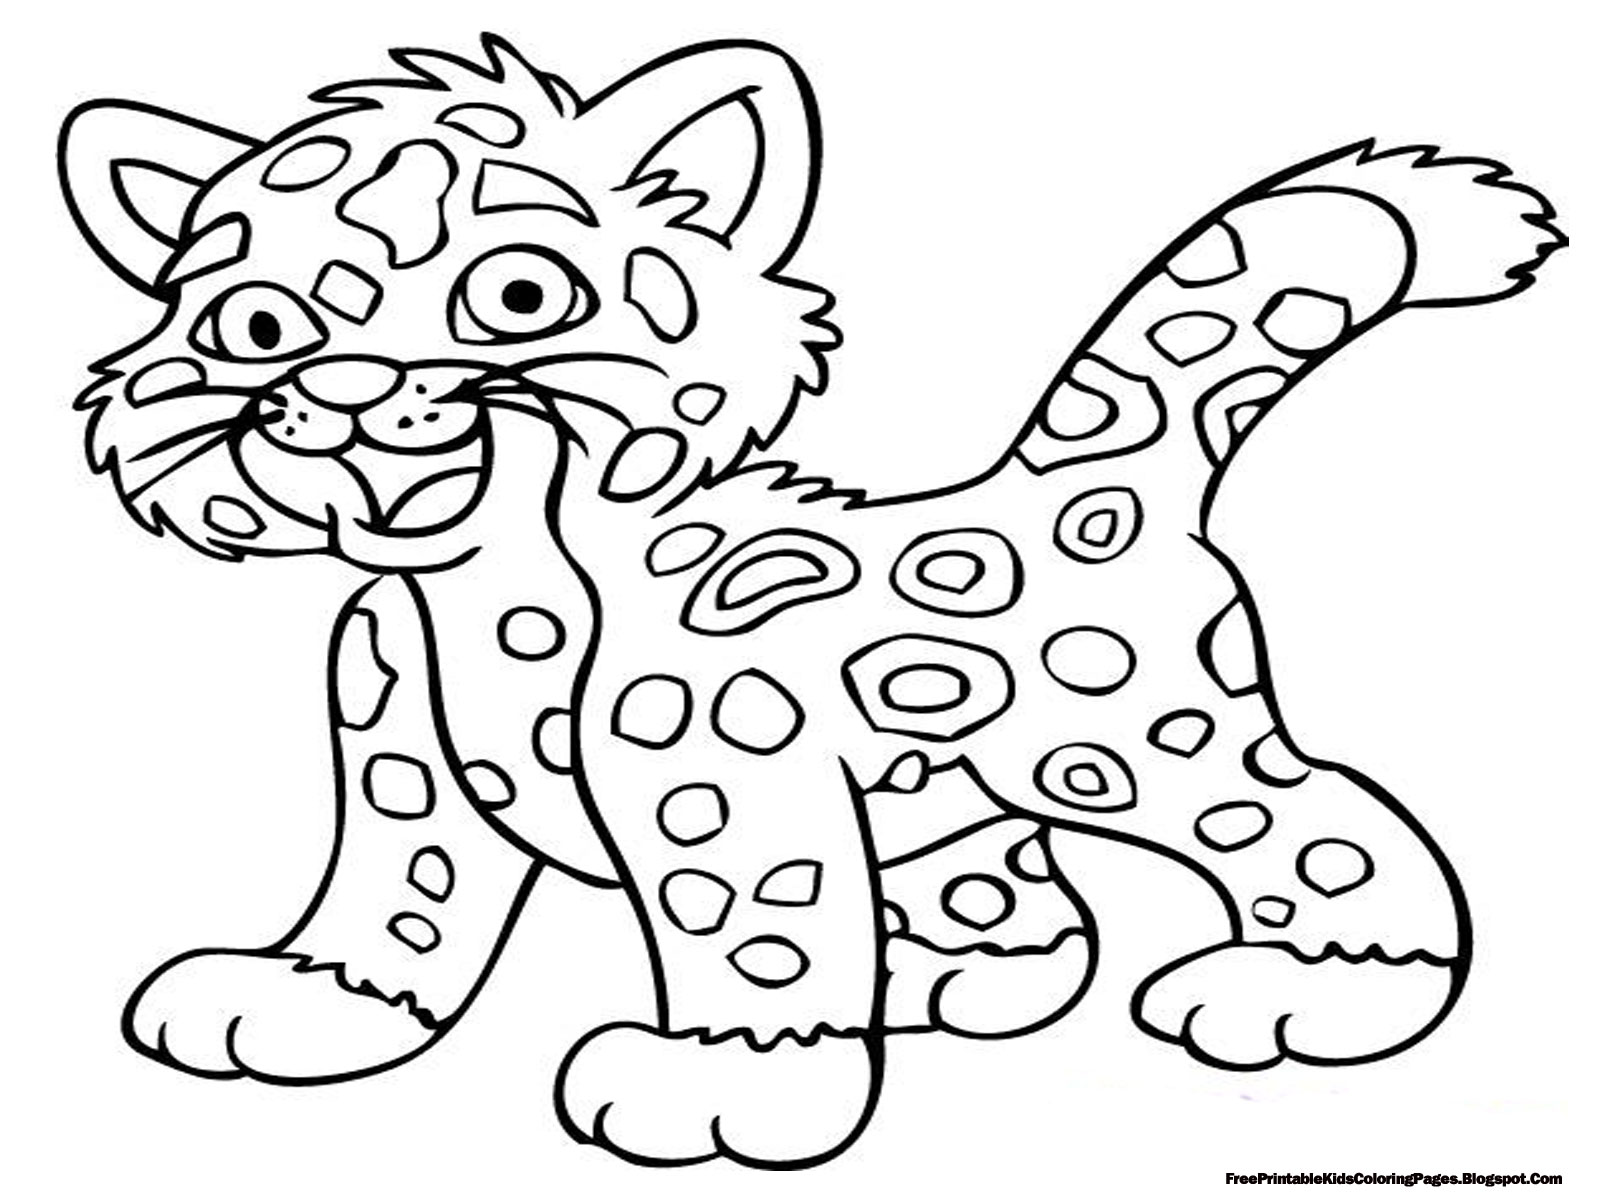 Jaguar Coloring Pages Free Printable Kids Coloring Pages Free Printable Coloring Pages Of Animals